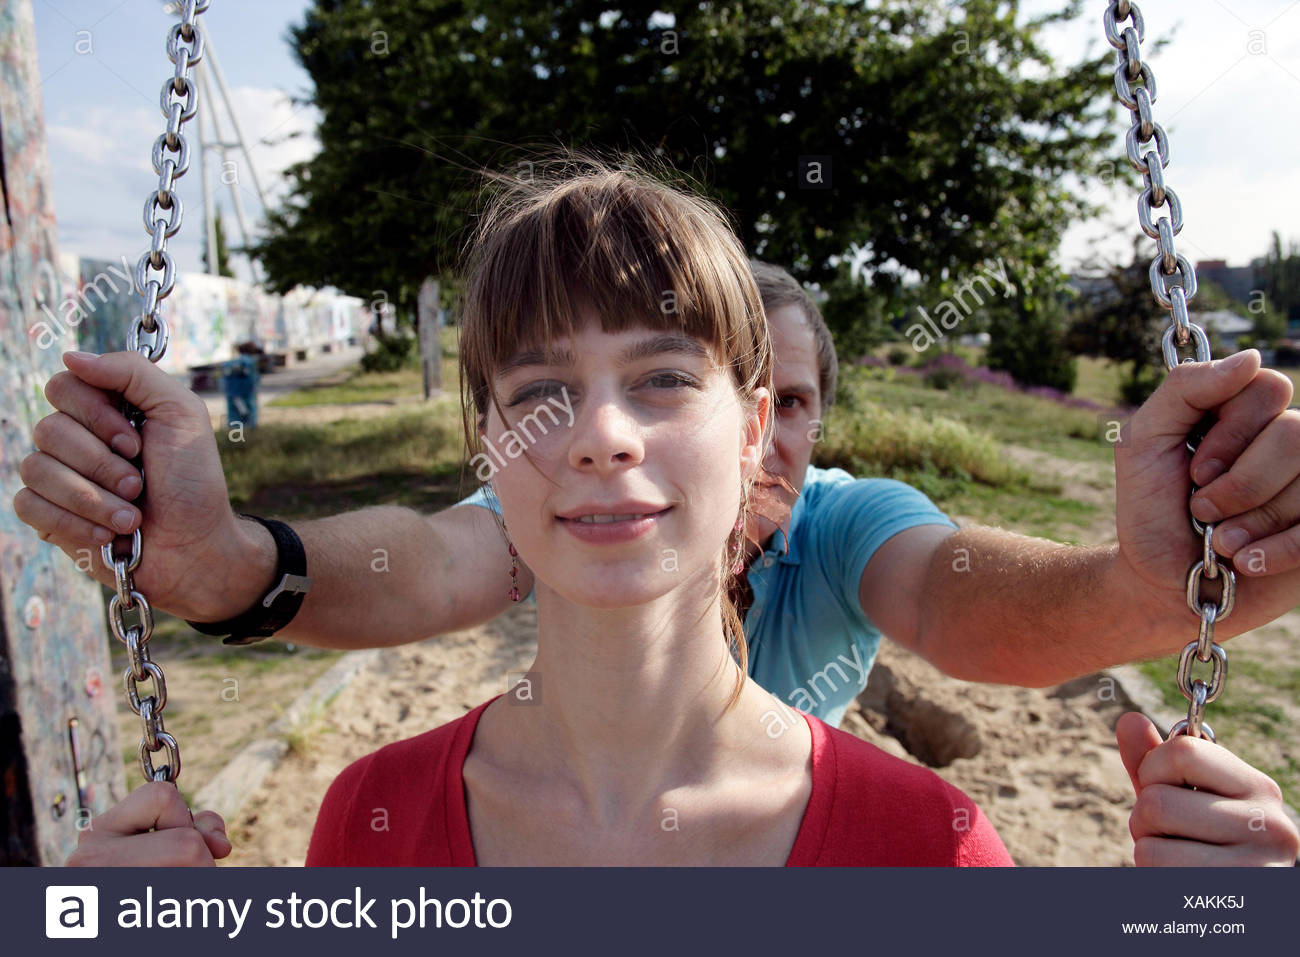 Man pushing woman on playground swing - Stock Image